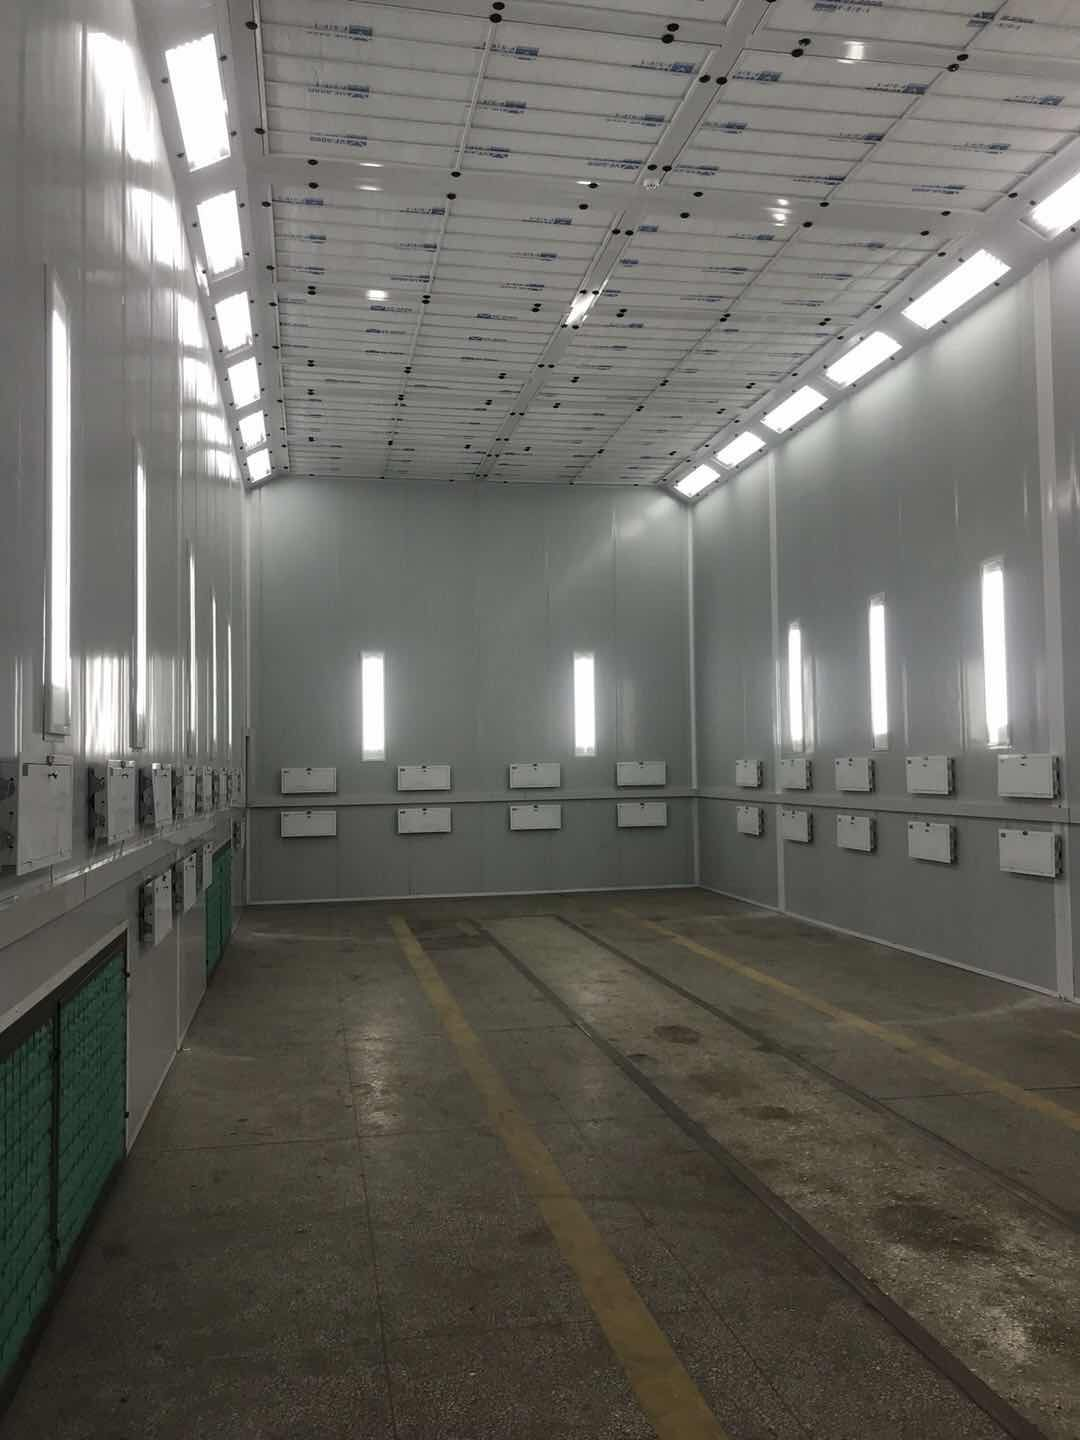 15m bus paint booth installation finished successfully !